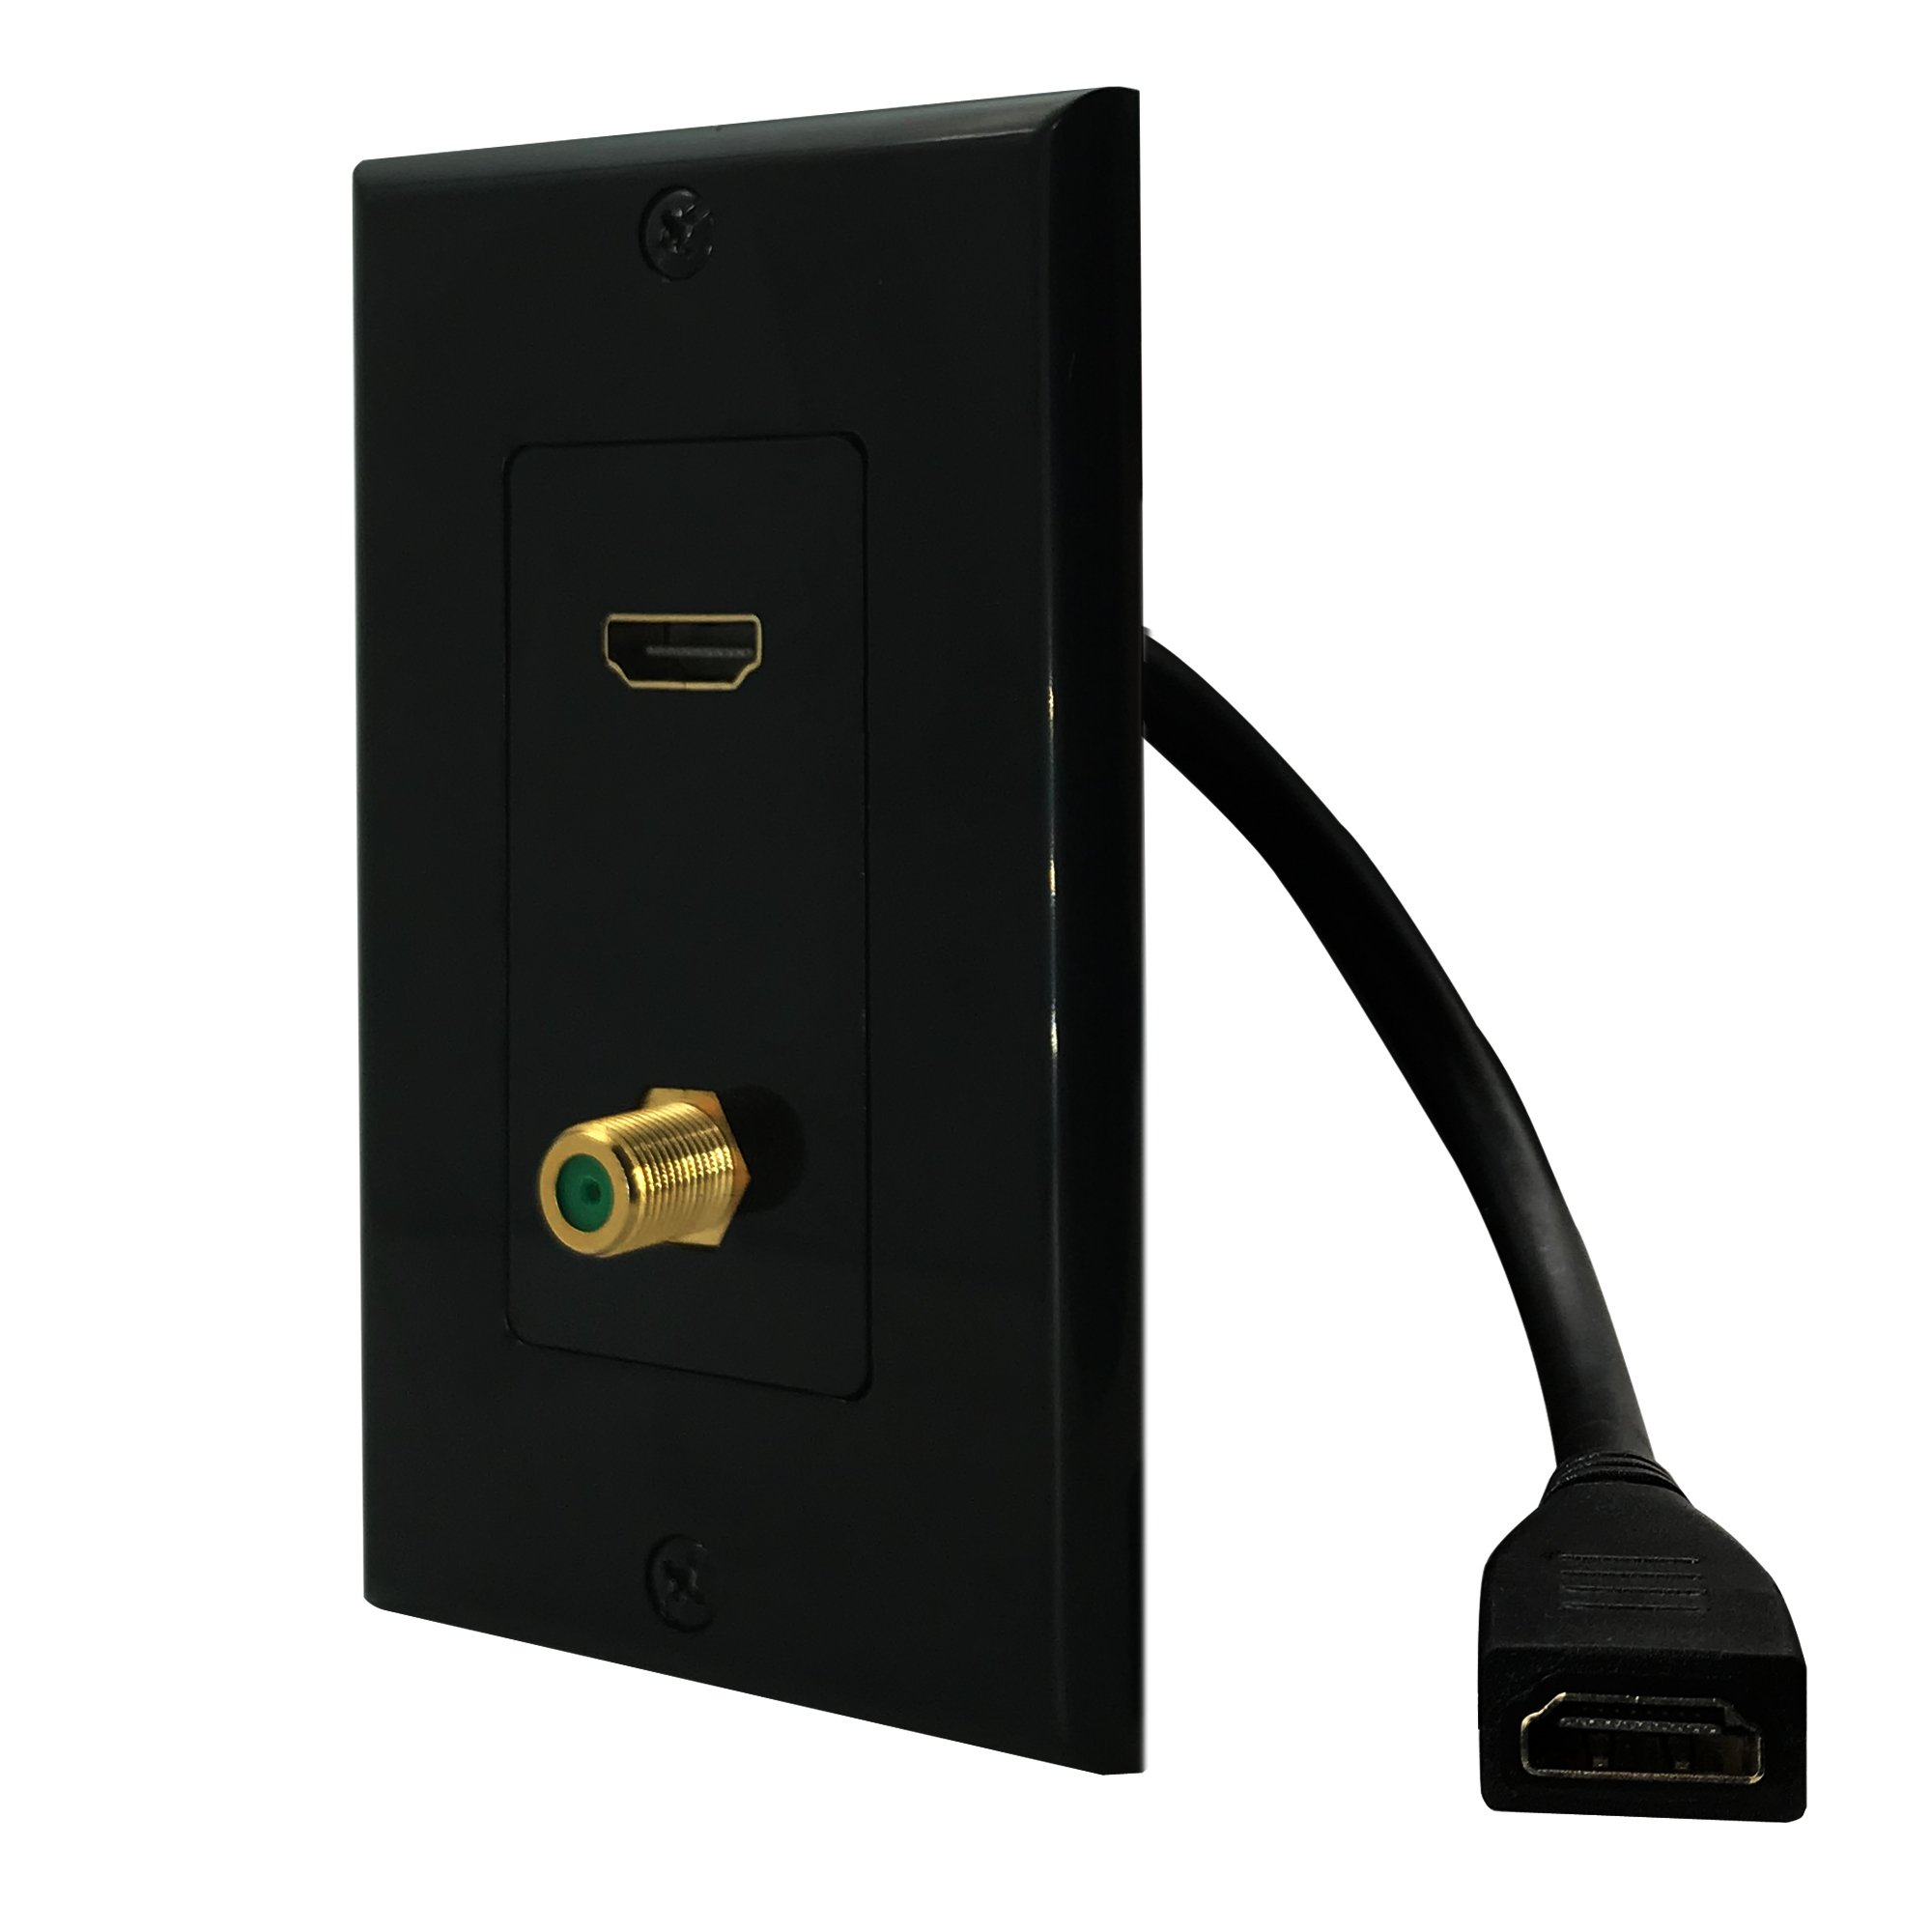 HDMI Pigtail Cable +F Connector Coaxial Gold Plated Brass Wall Plate With Single Gang low Voltage Mounting Bracket,Yomyrayhu,Work for Home Theater,HDTV and More(Black) by Yomyrayhu (Image #3)